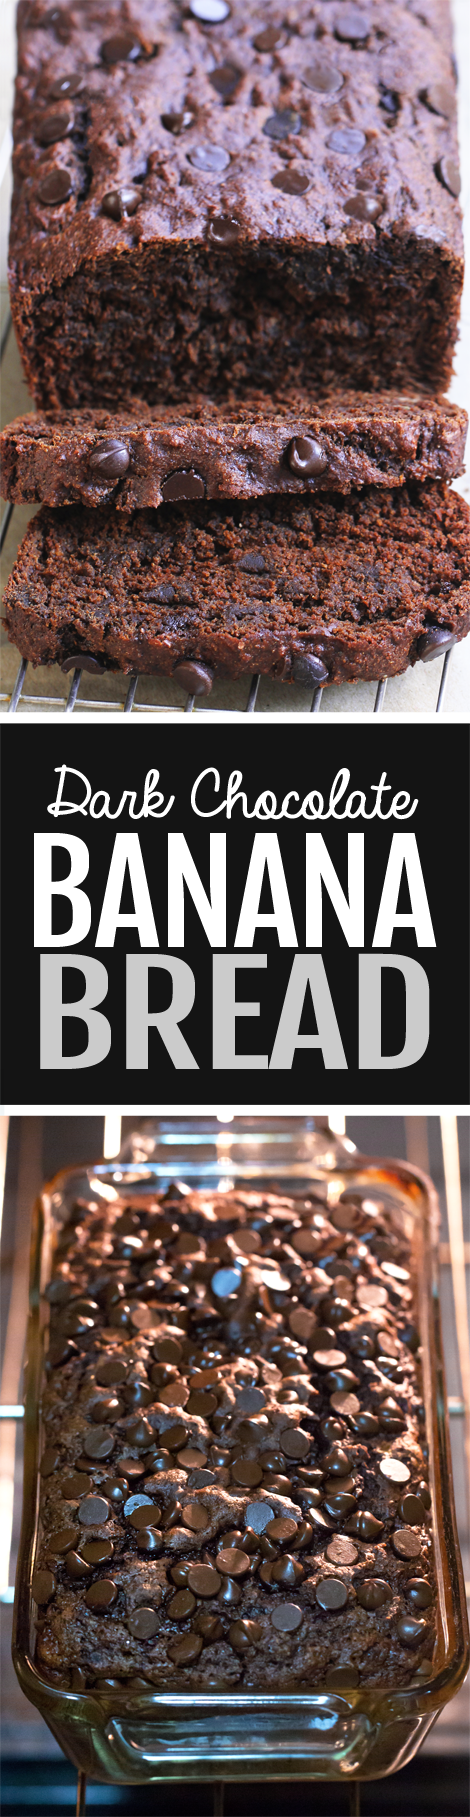 Dark Chocolate Banana Bread Recipe